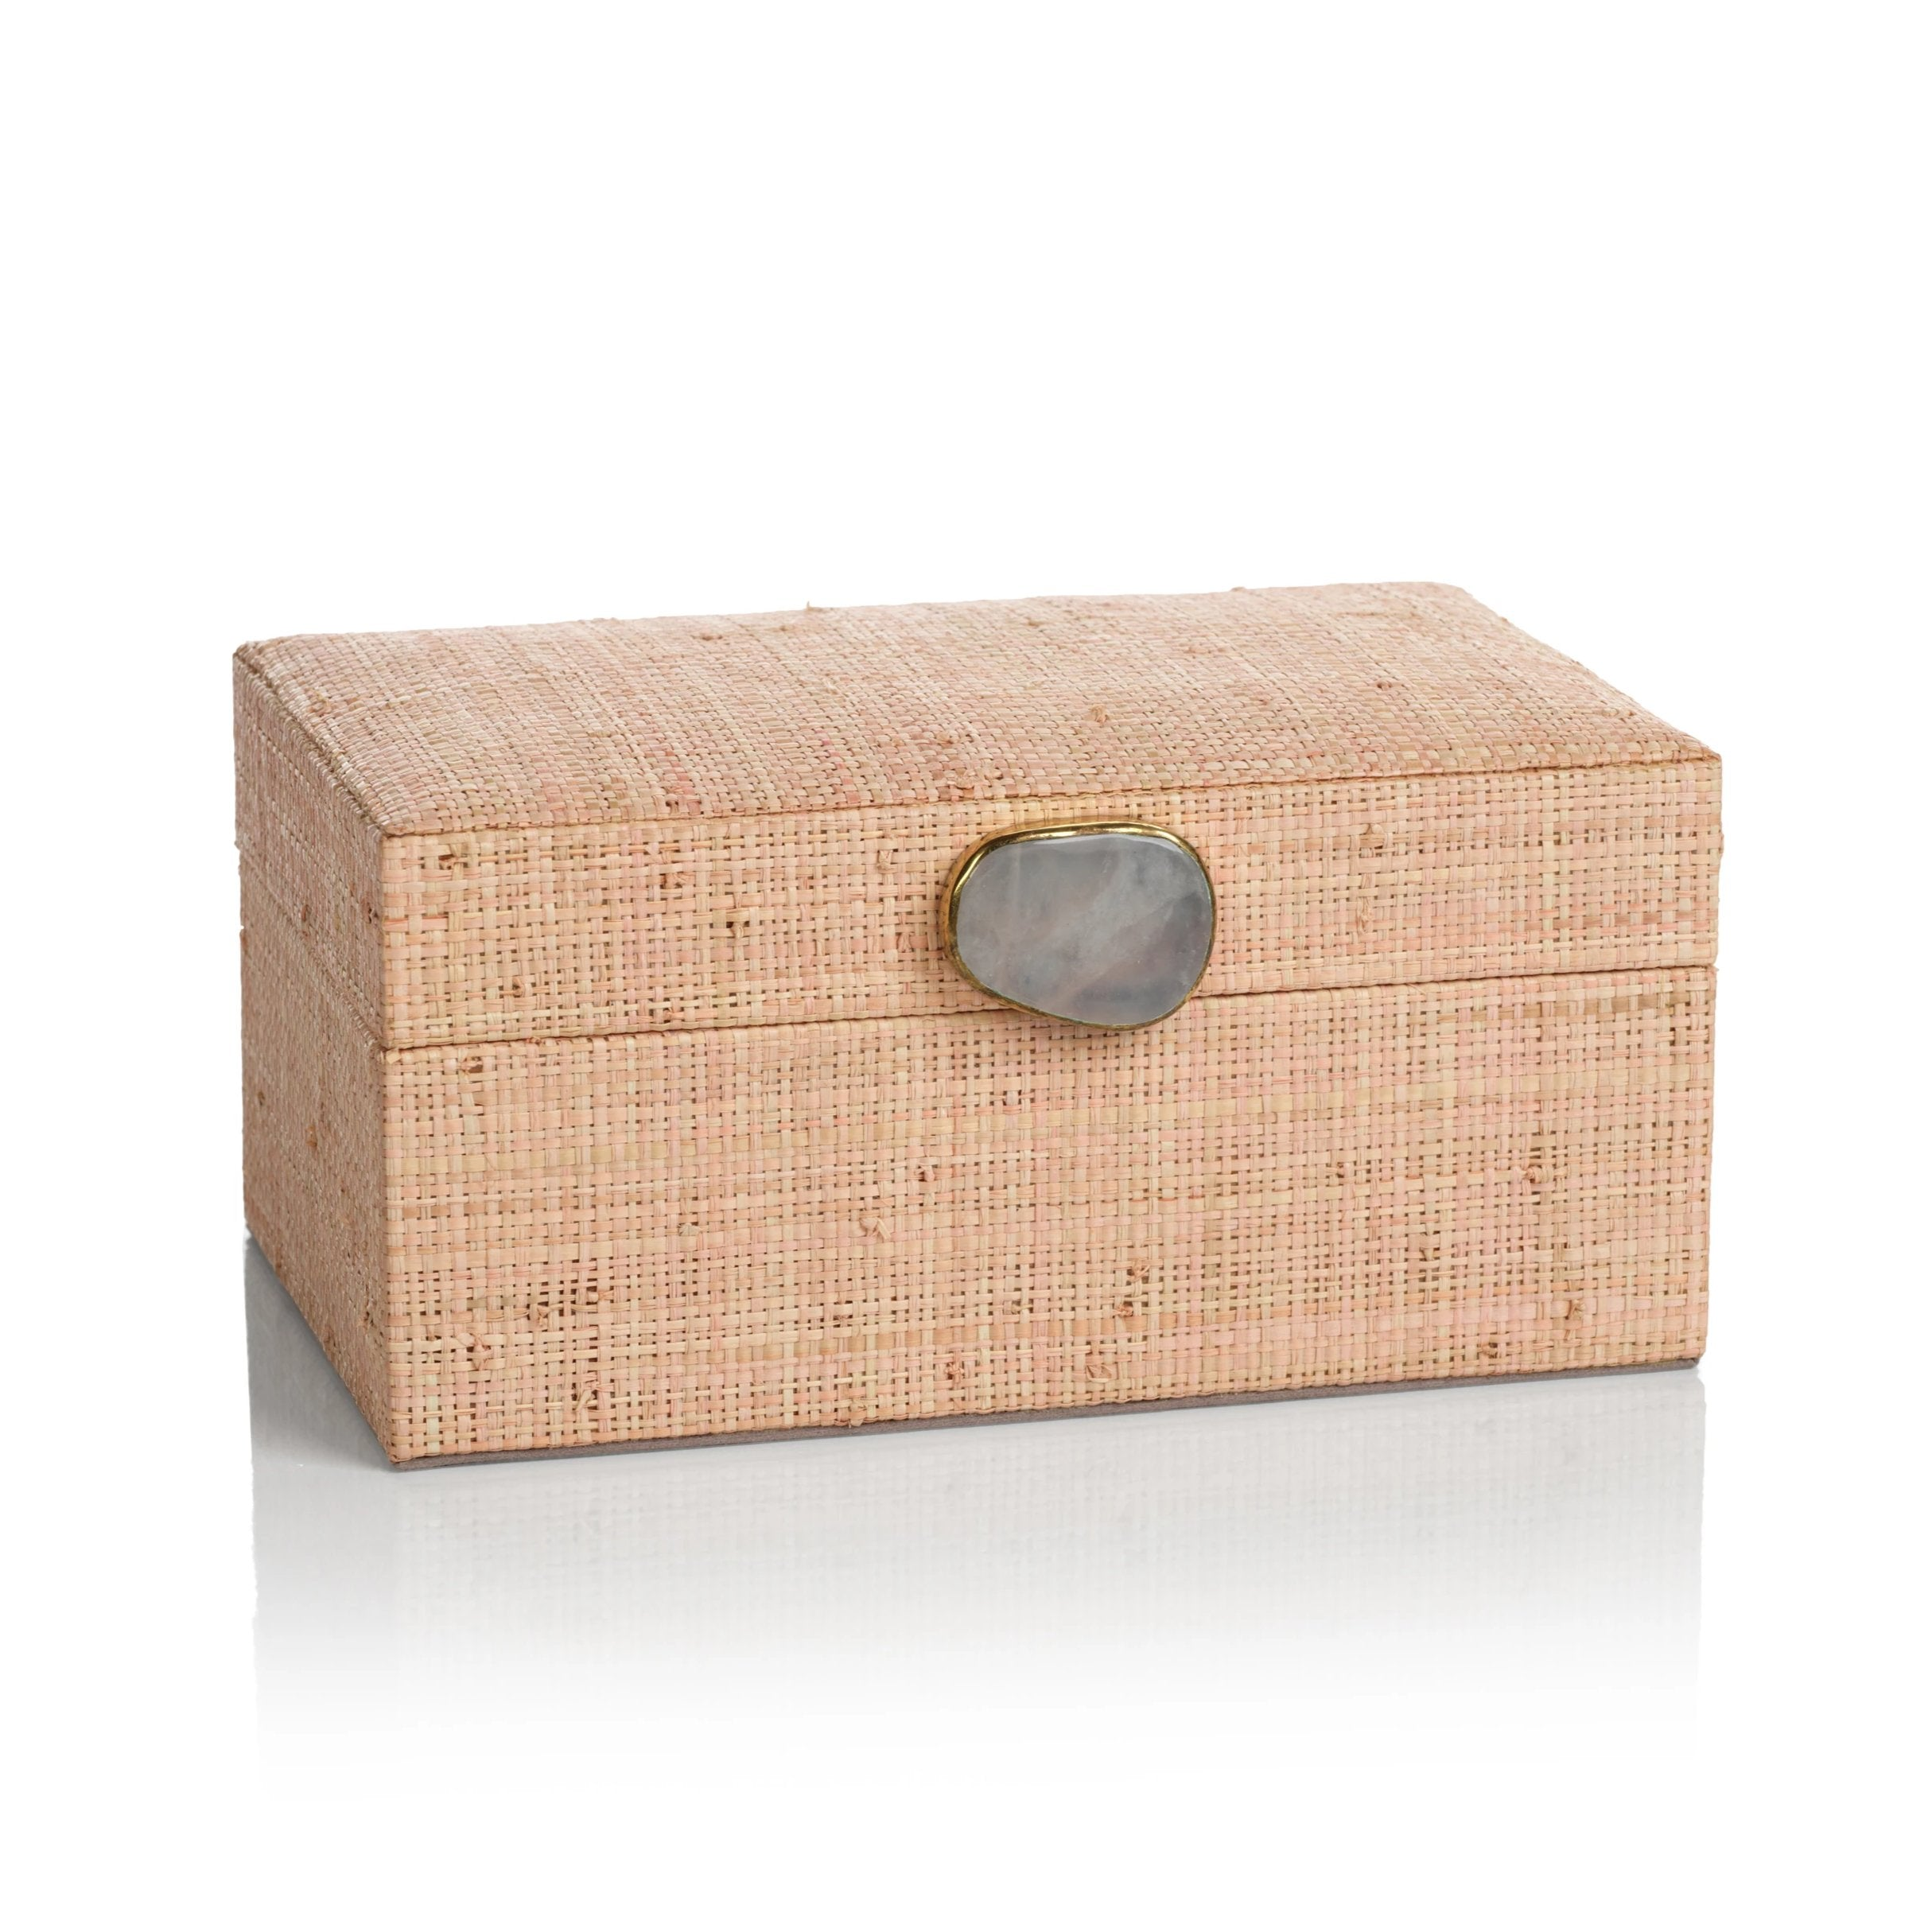 Raffia Palm Box with Stone Accent - Blush - CARLYLE AVENUE